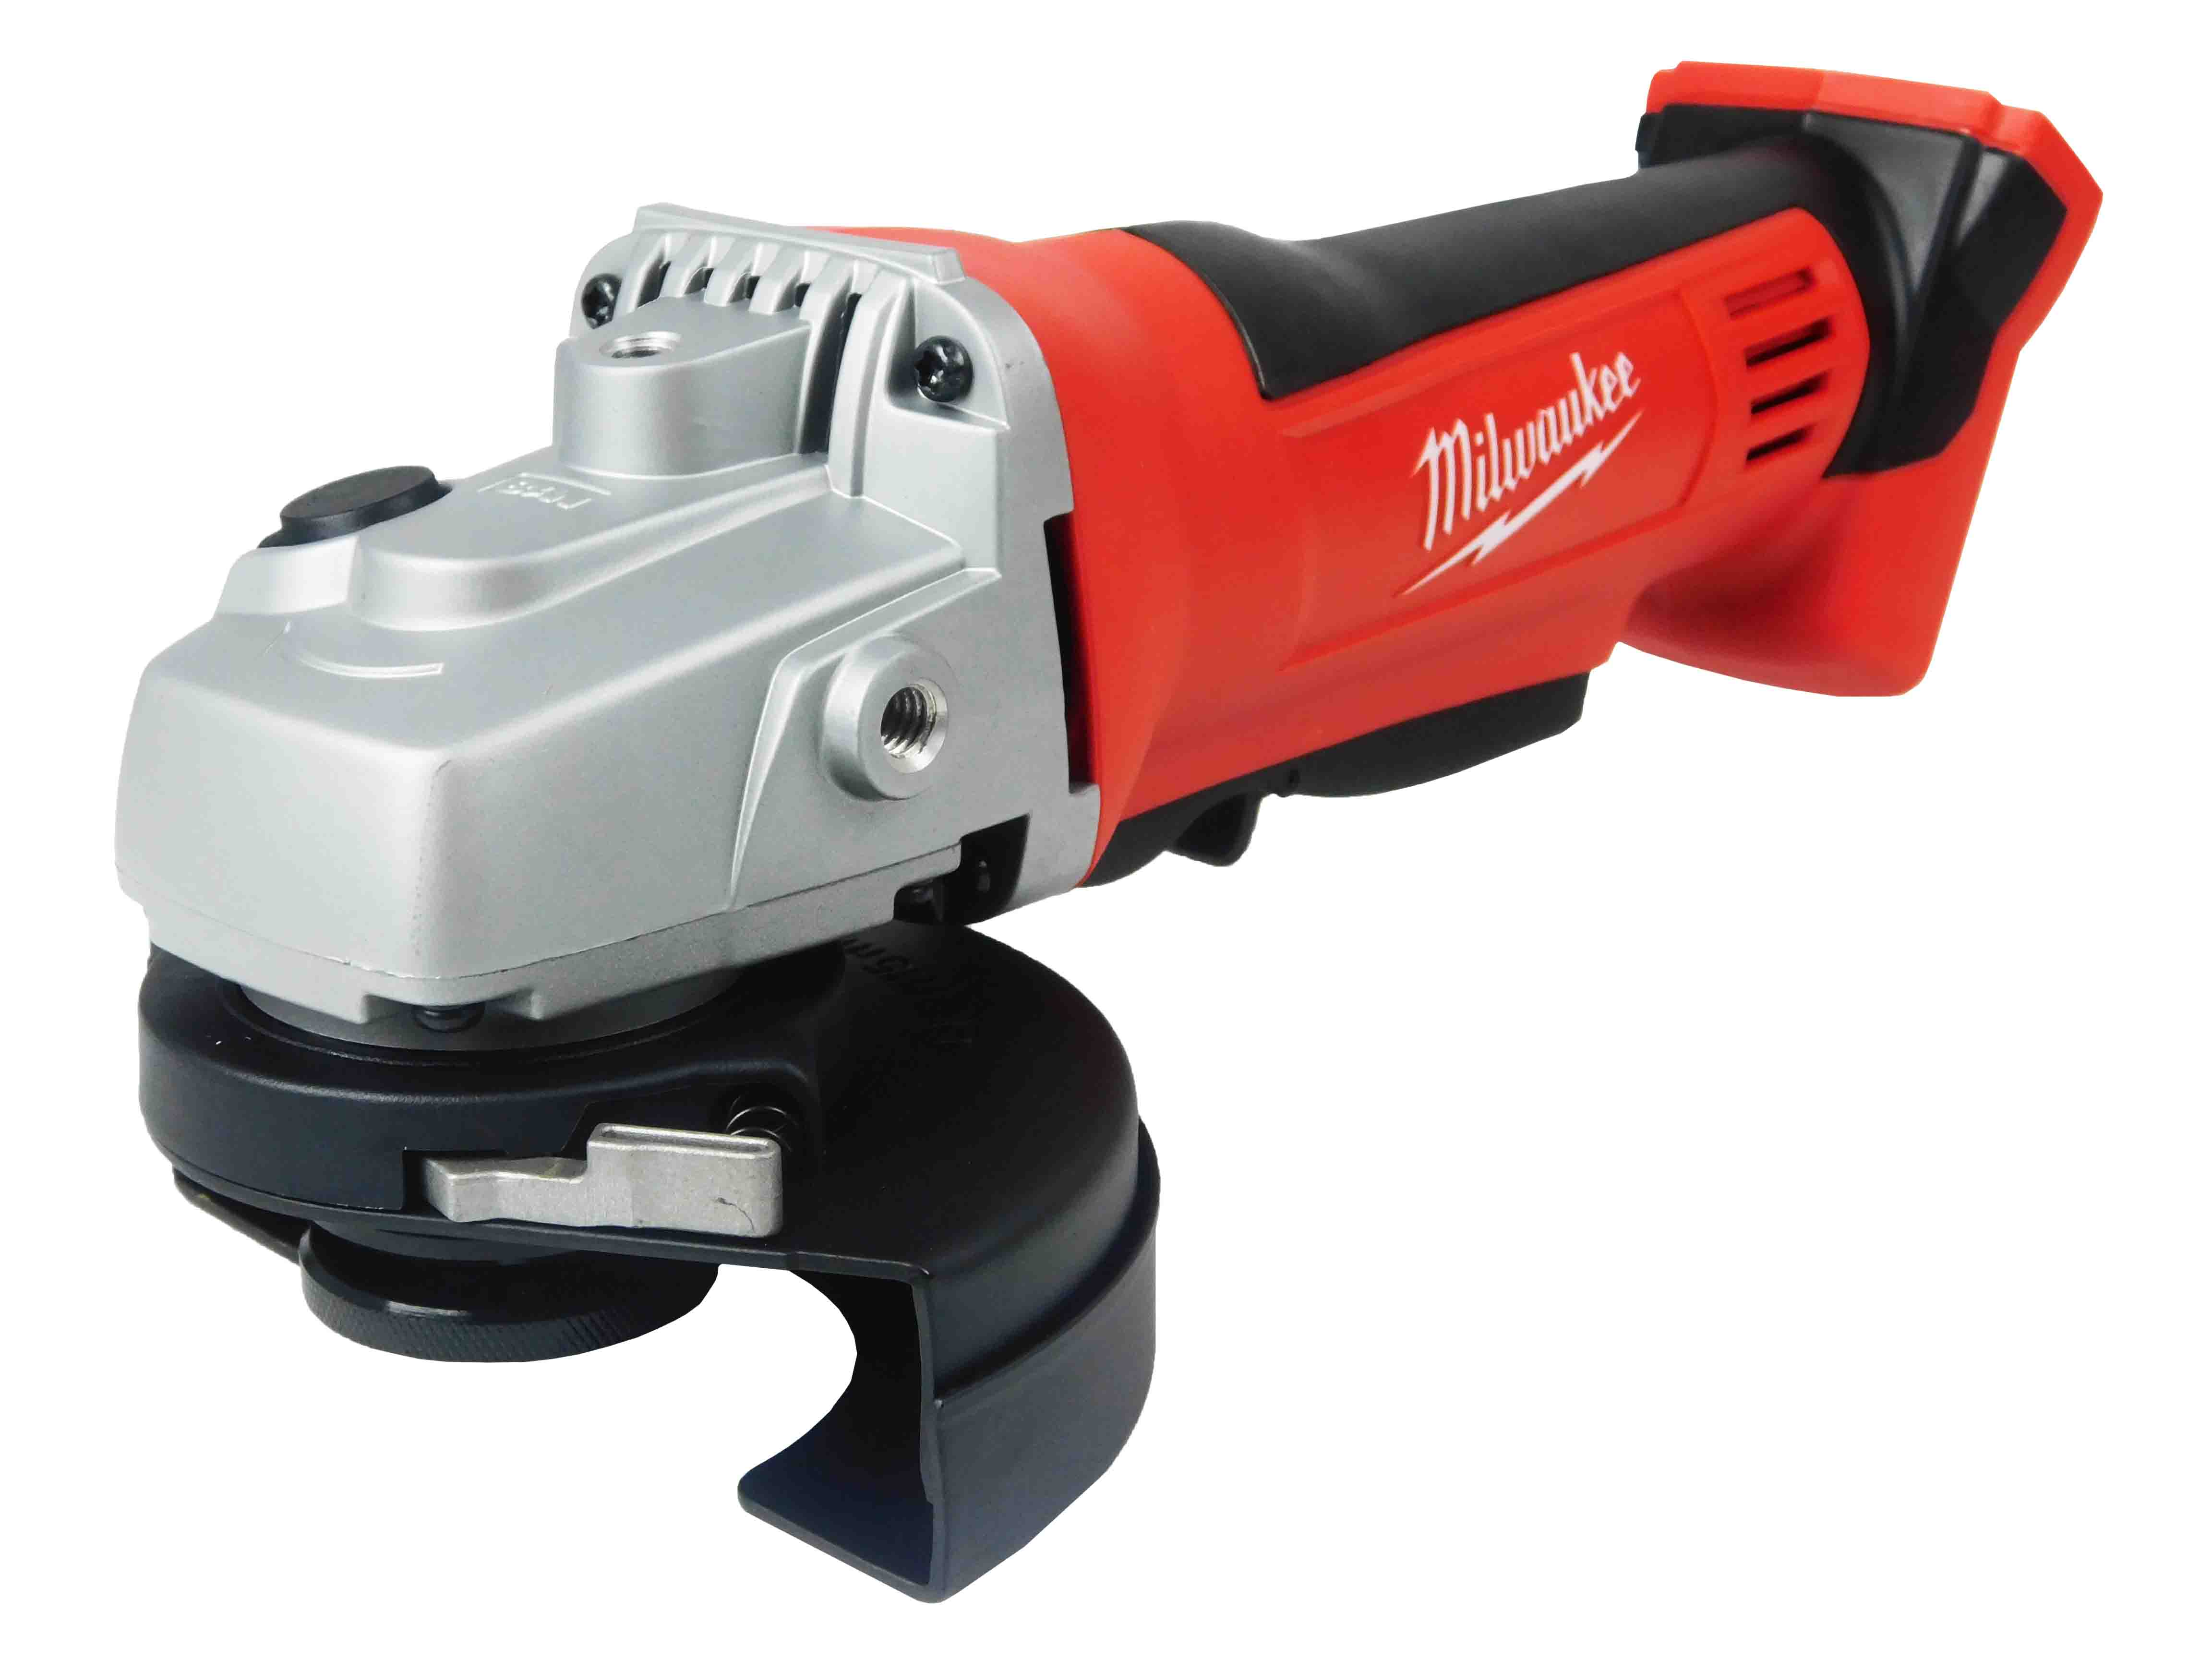 Milwaukee-M18-2680-20-18V-4-1-2-Cordless-Cutoff-Grinder-Tool-Only-image-2